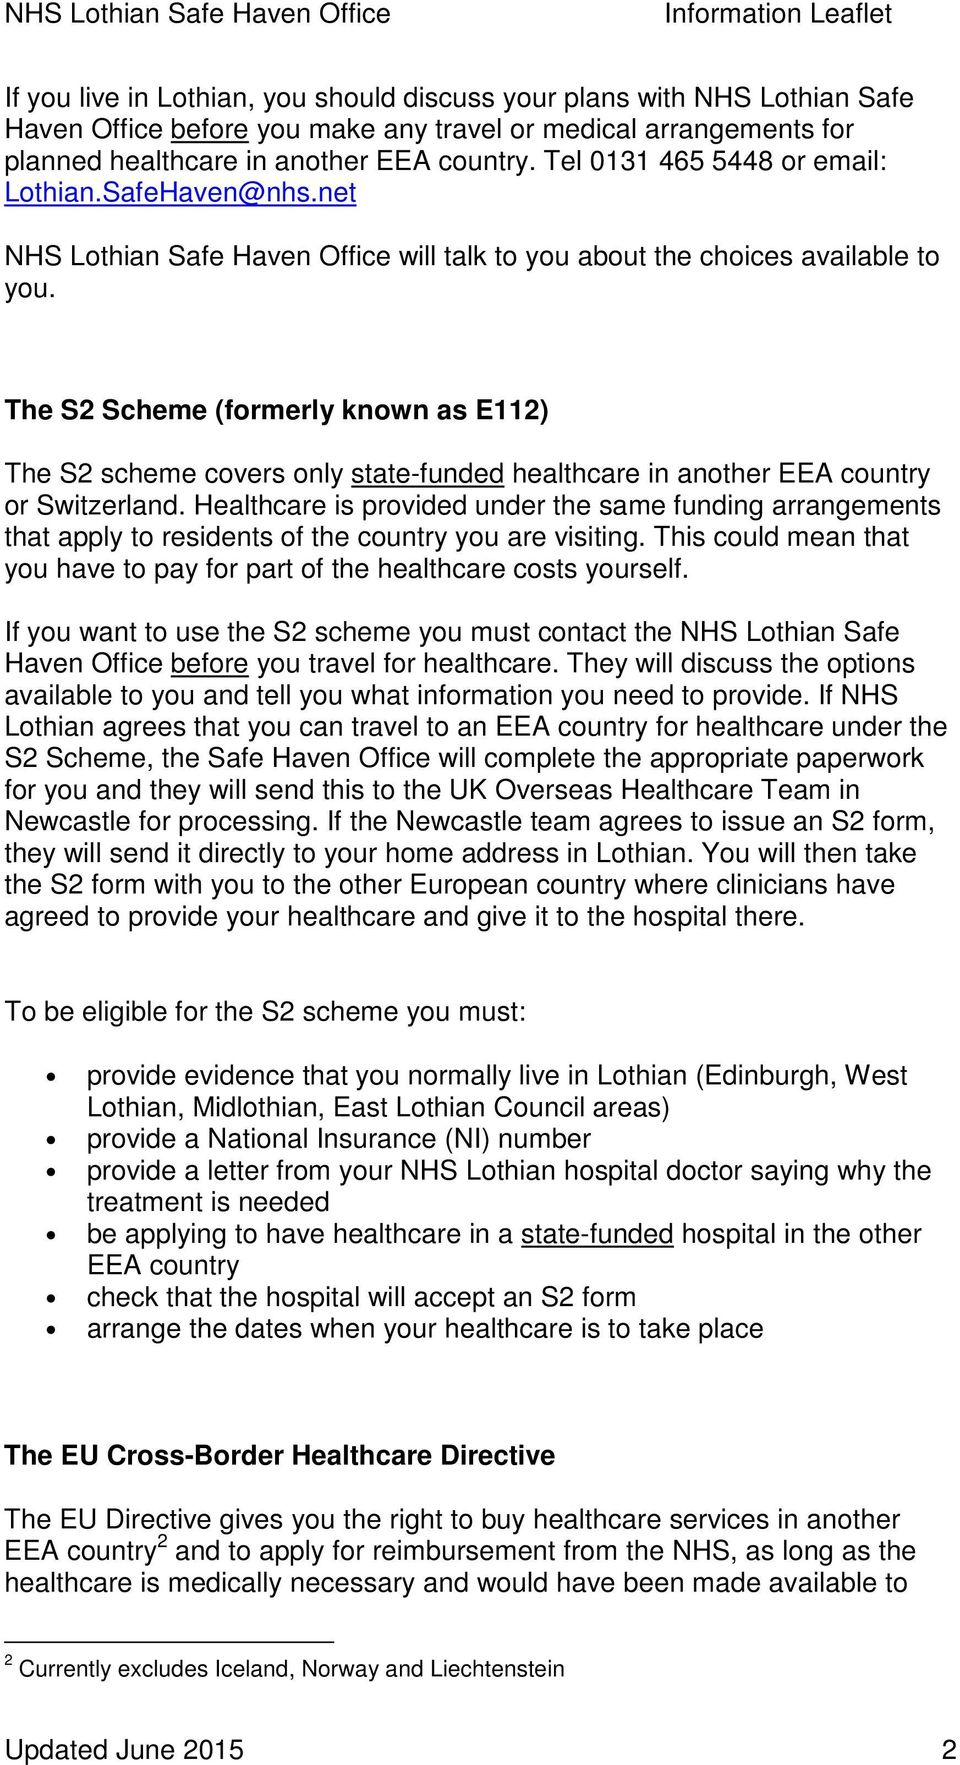 The S2 Scheme (formerly known as E112) The S2 scheme covers only state-funded healthcare in another EEA country or Switzerland.